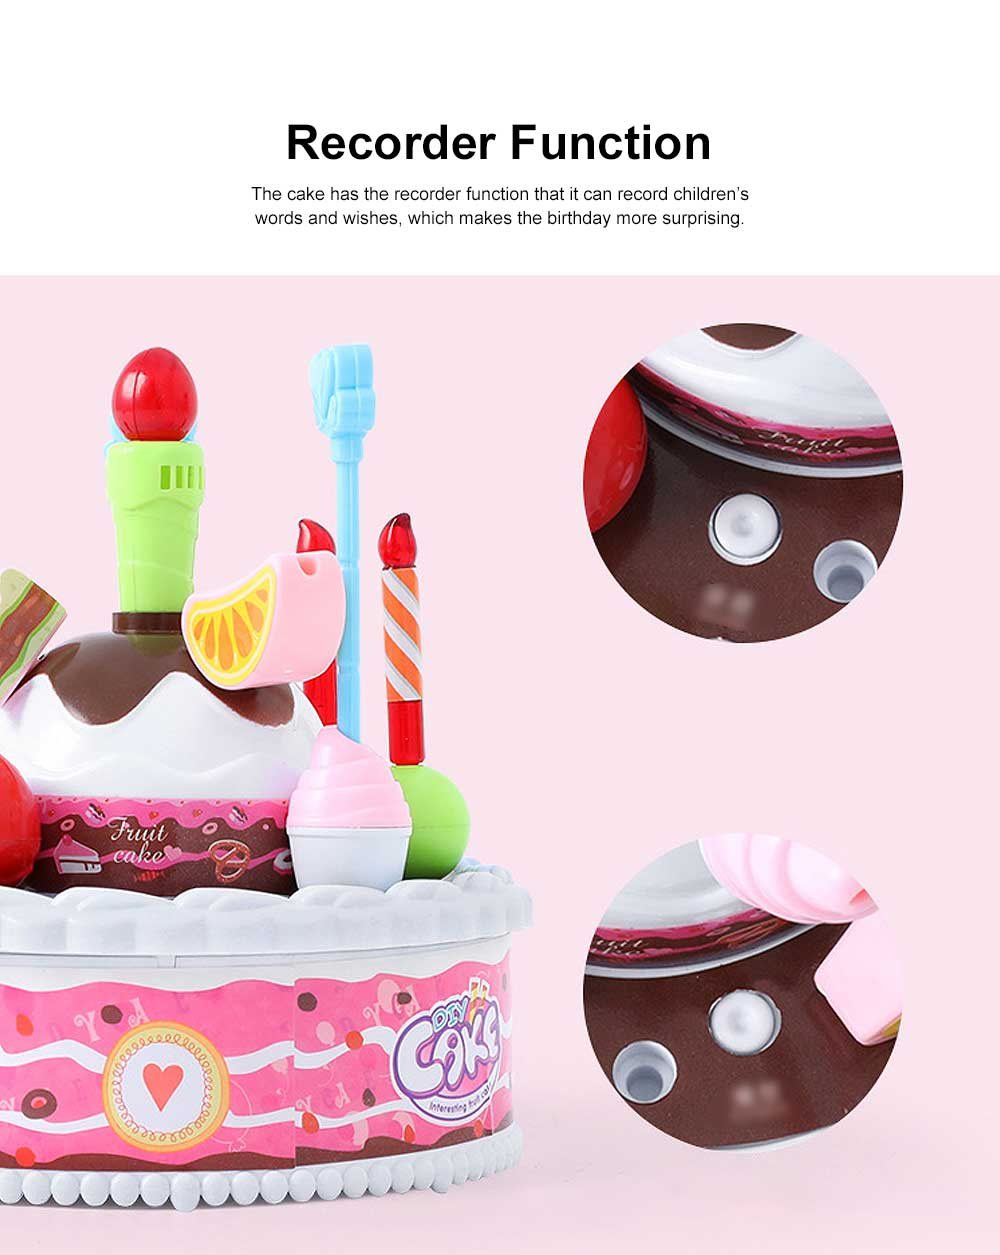 Birthday Cake Toy for Children & Kids, DIY Birthday Cake Model with Sound Recorder Function Birthday Present Gift 4